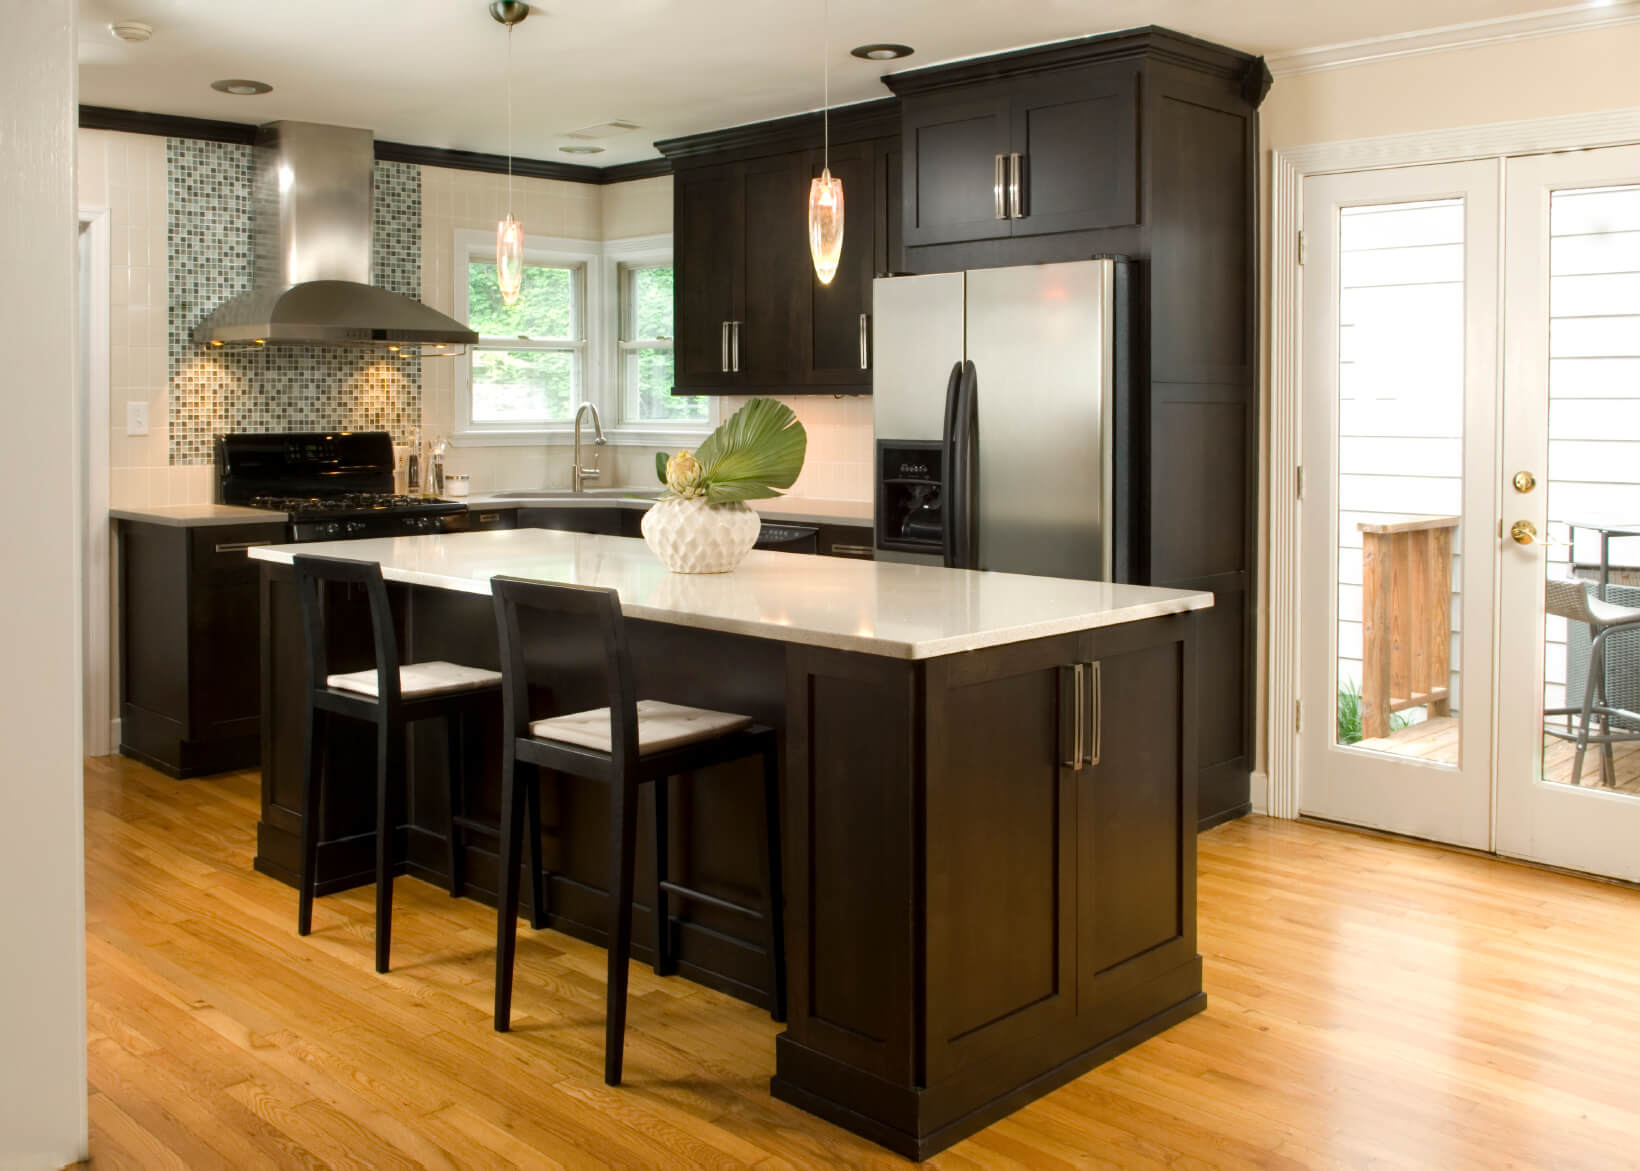 dark kitchen cabinets kitchen cabinet countertop High contrast white wall kitchen with dark wood paneling and cupboards paired with white countertops